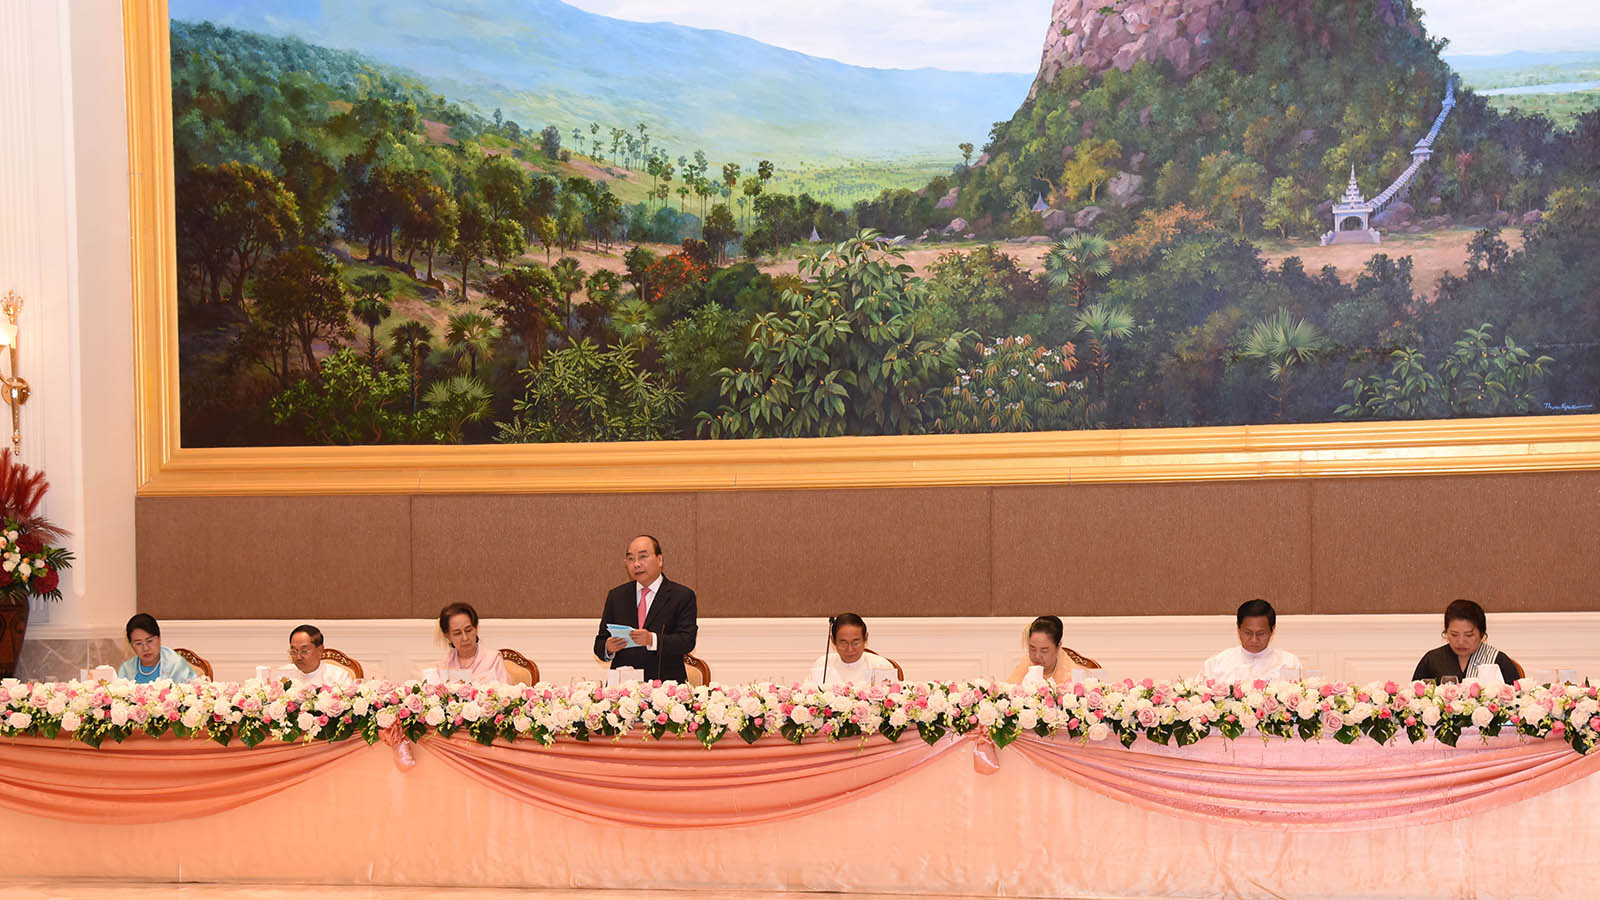 President U Win Myint and First Lady Daw Cho Cho attend the luncheon for Prime Minister Nguyen Xuan Phuc of the Socialist Republic of Viet Nam yesterday. Photo: MNA